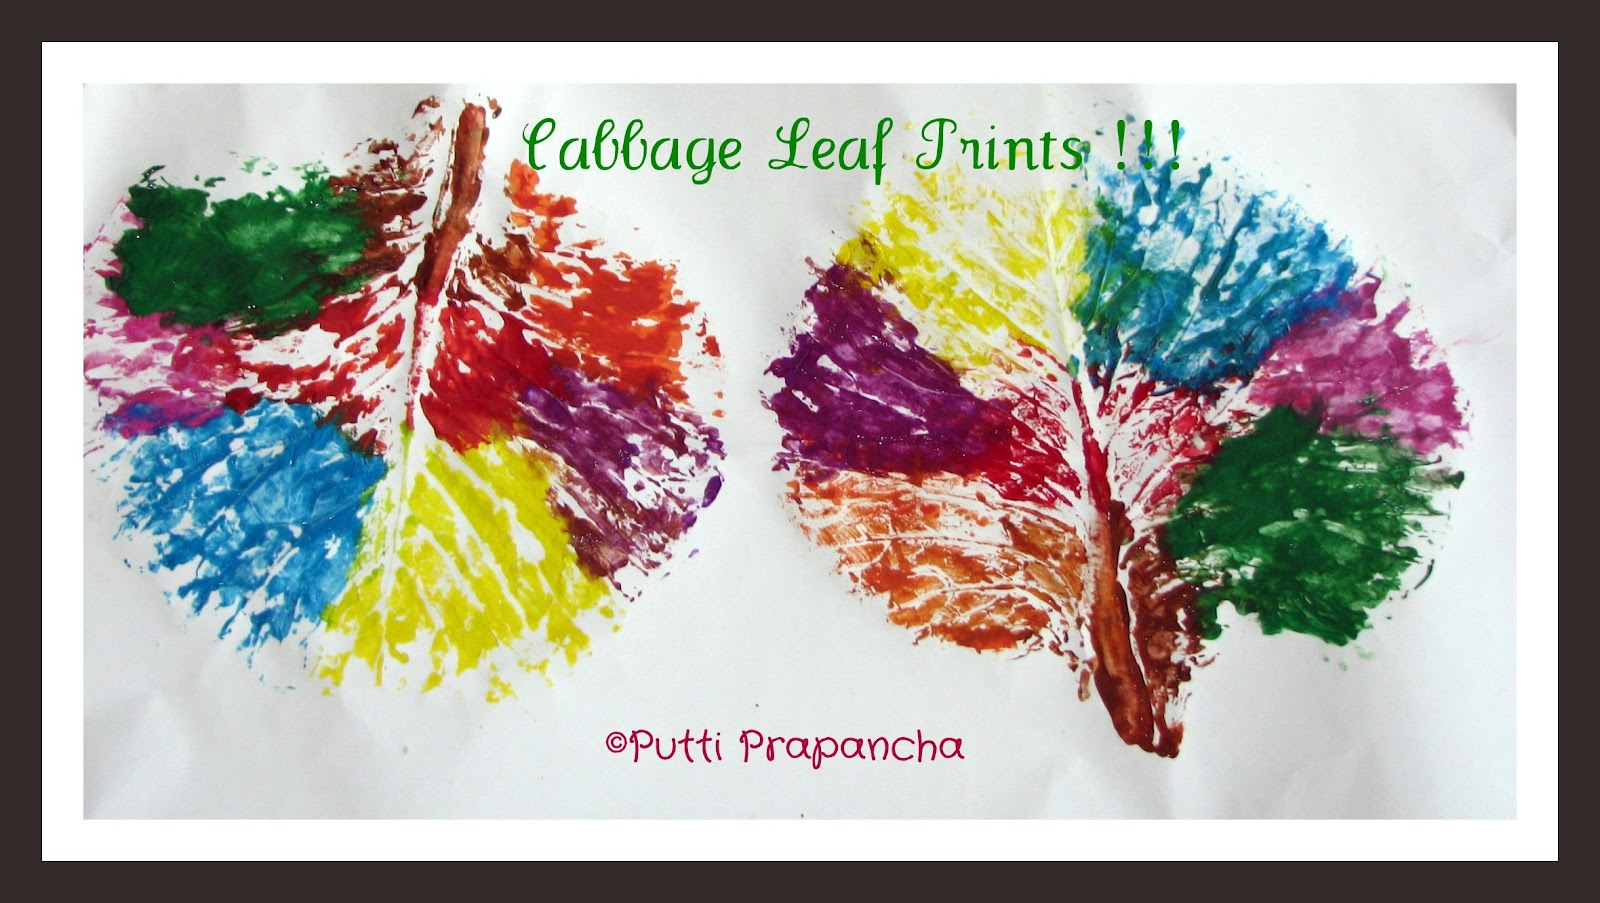 Big Leaf Printing - with cabbage leaves!! ~ Putti's World